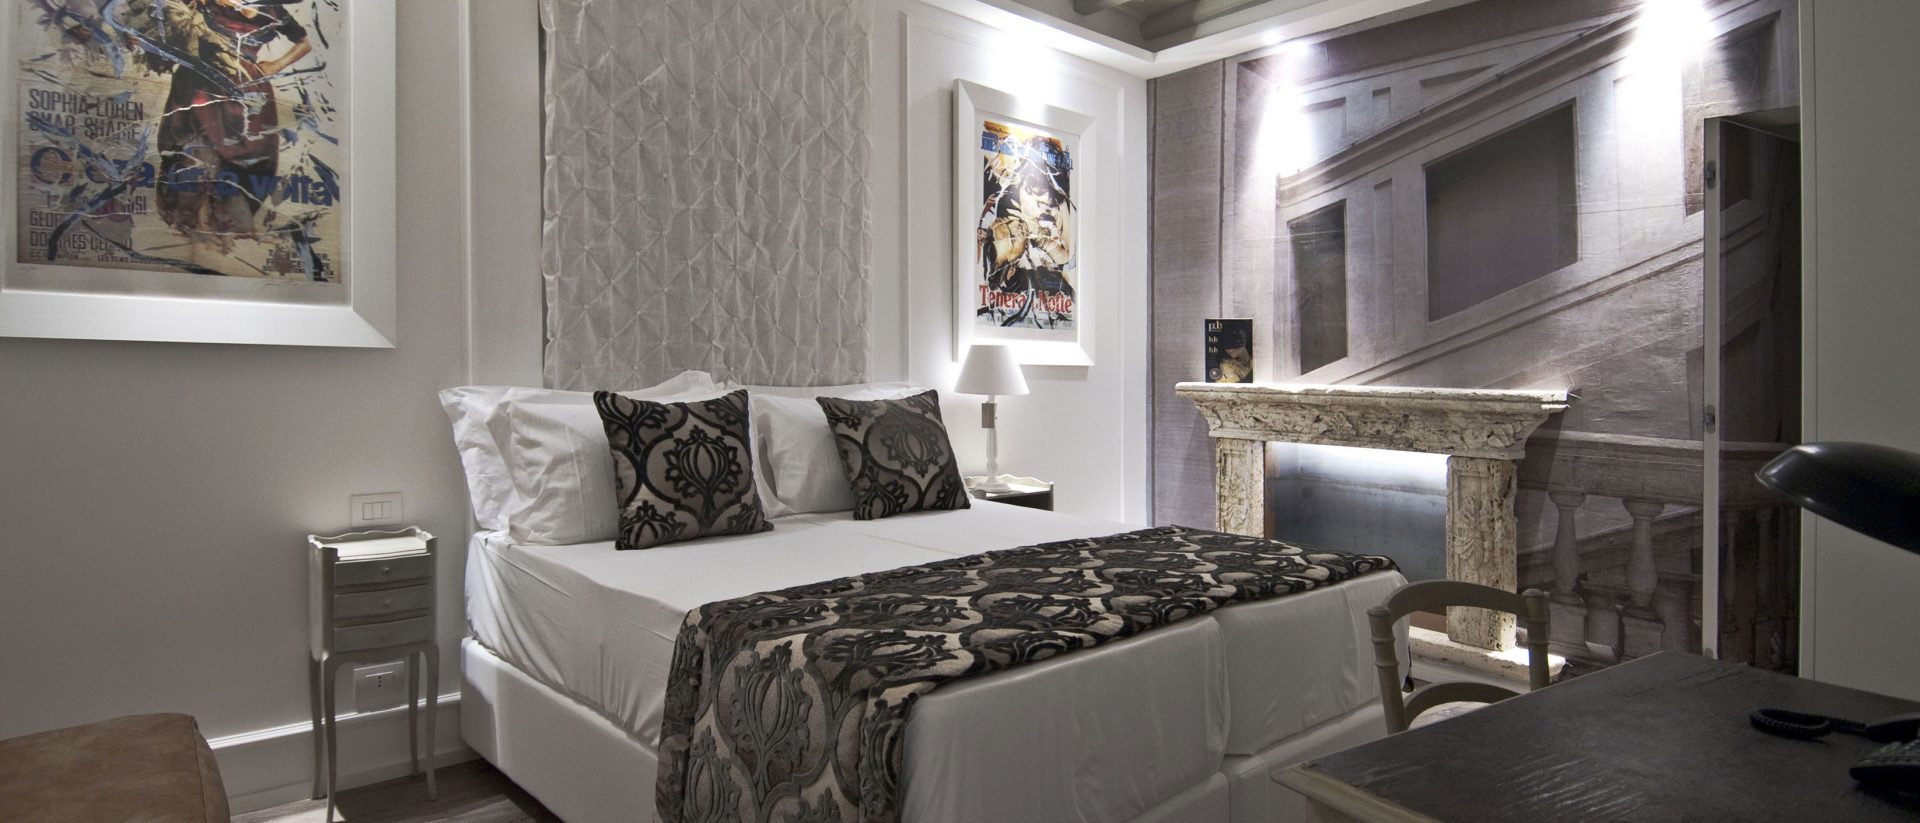 BDB Luxury Rooms Trastevere Torre | Camere di lusso a Roma centro in Trastevere